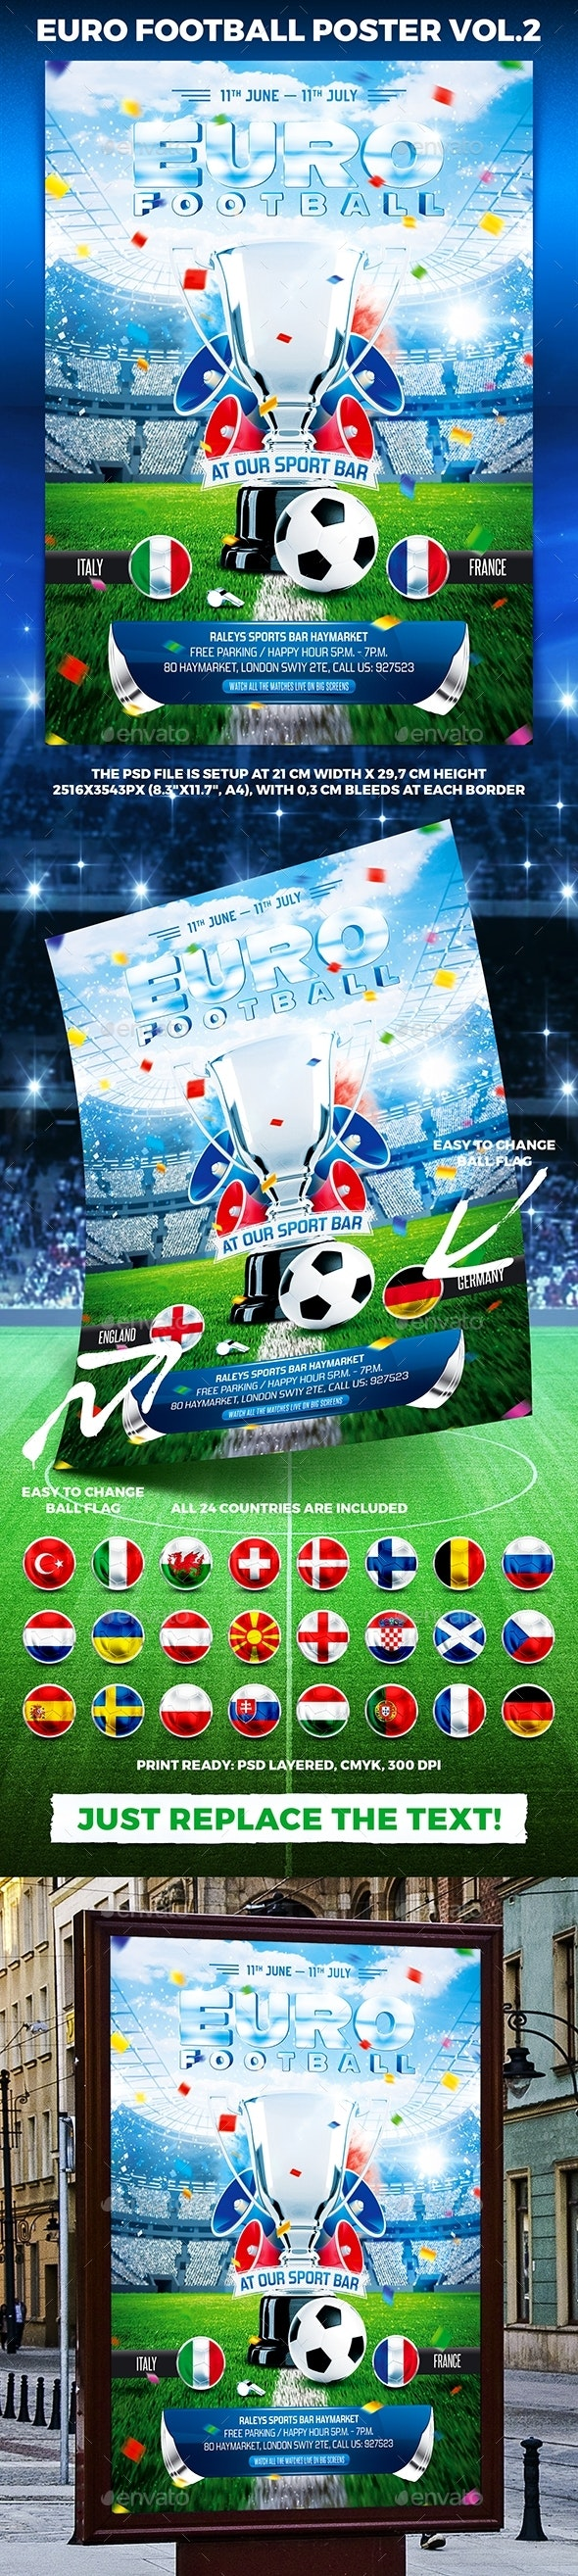 Euro Football Poster vol.2 - Sports Events